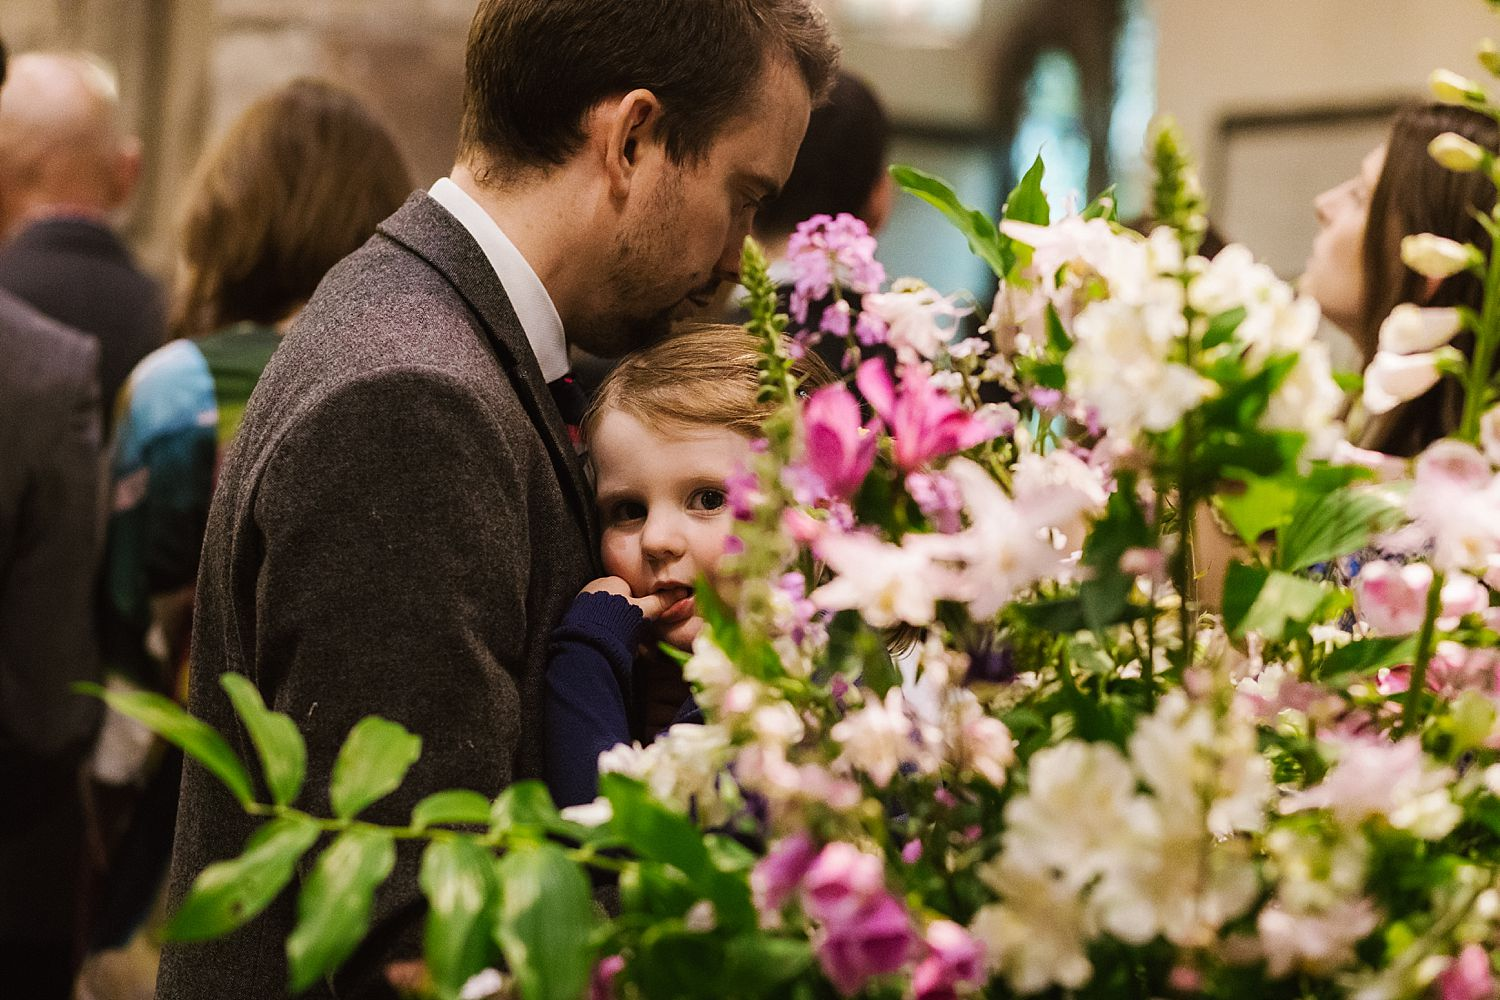 small child peeping through floral arrangement, Floristry by Carmen, at Park House Barn wedding